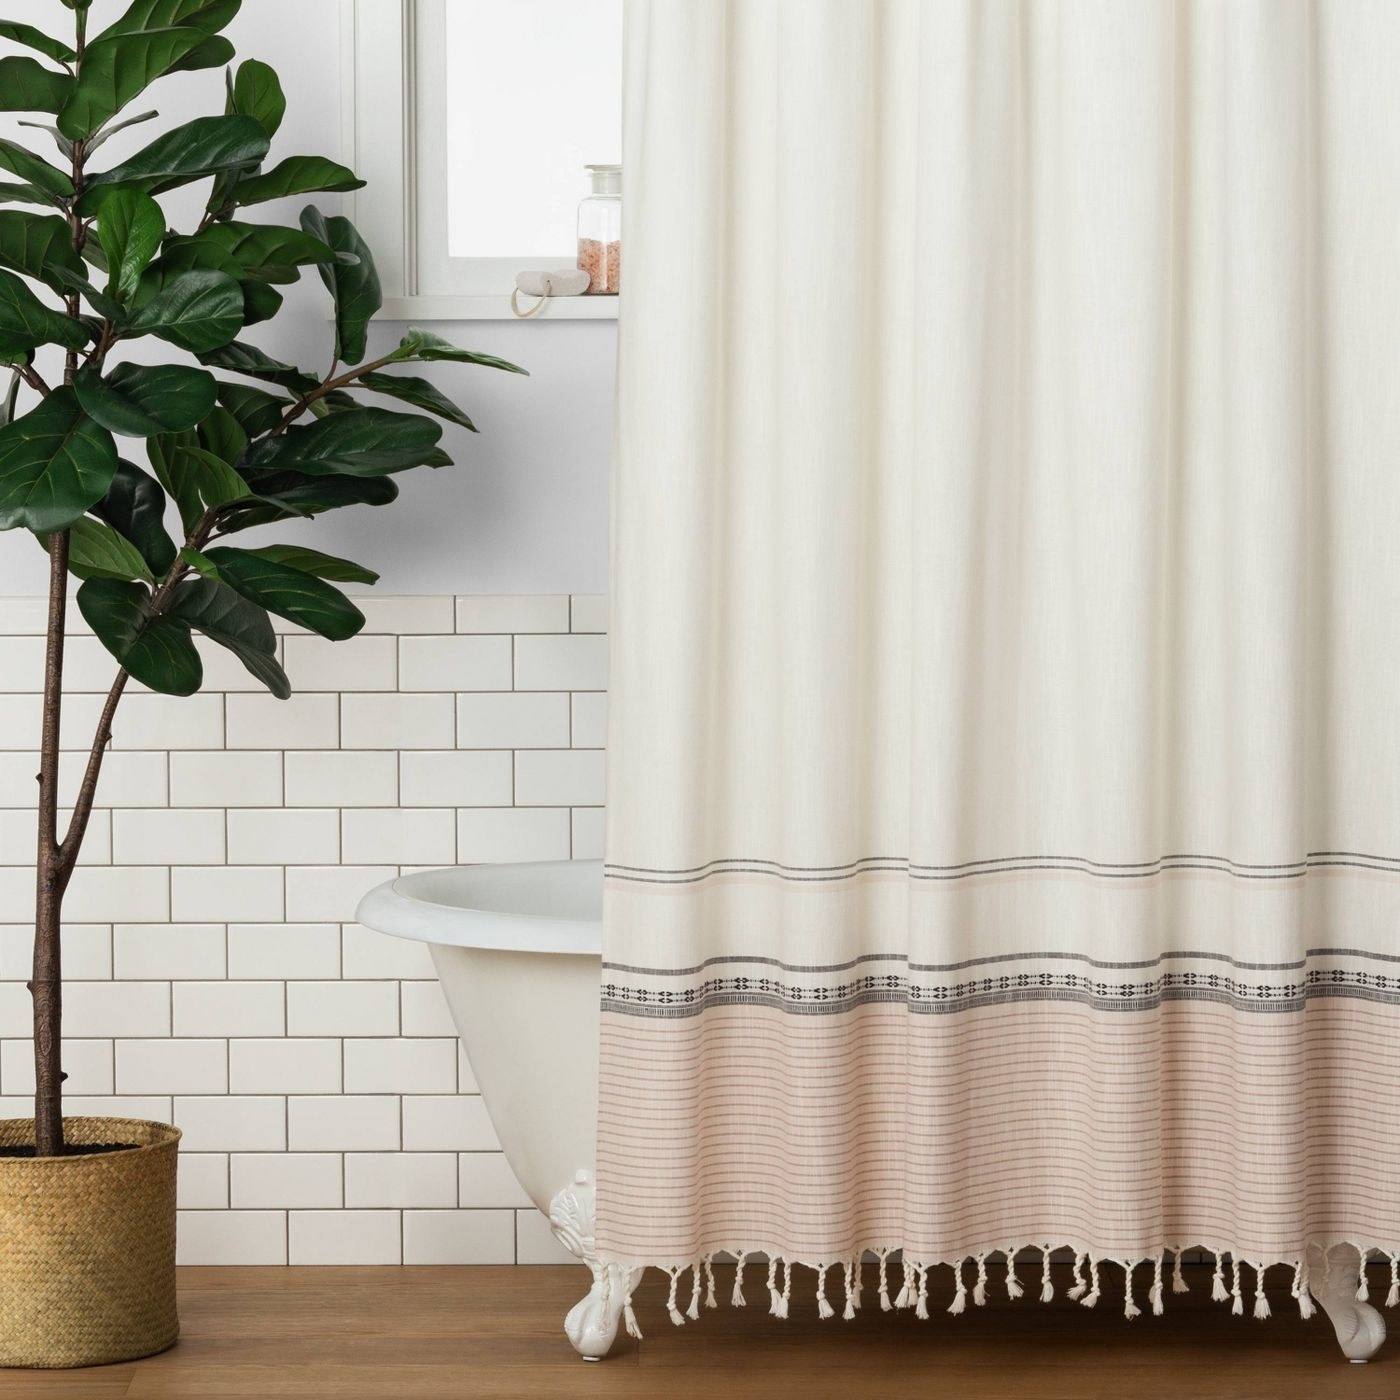 Cream shower curtain with pink bottom and dark gray detailing against a white tub and white wall